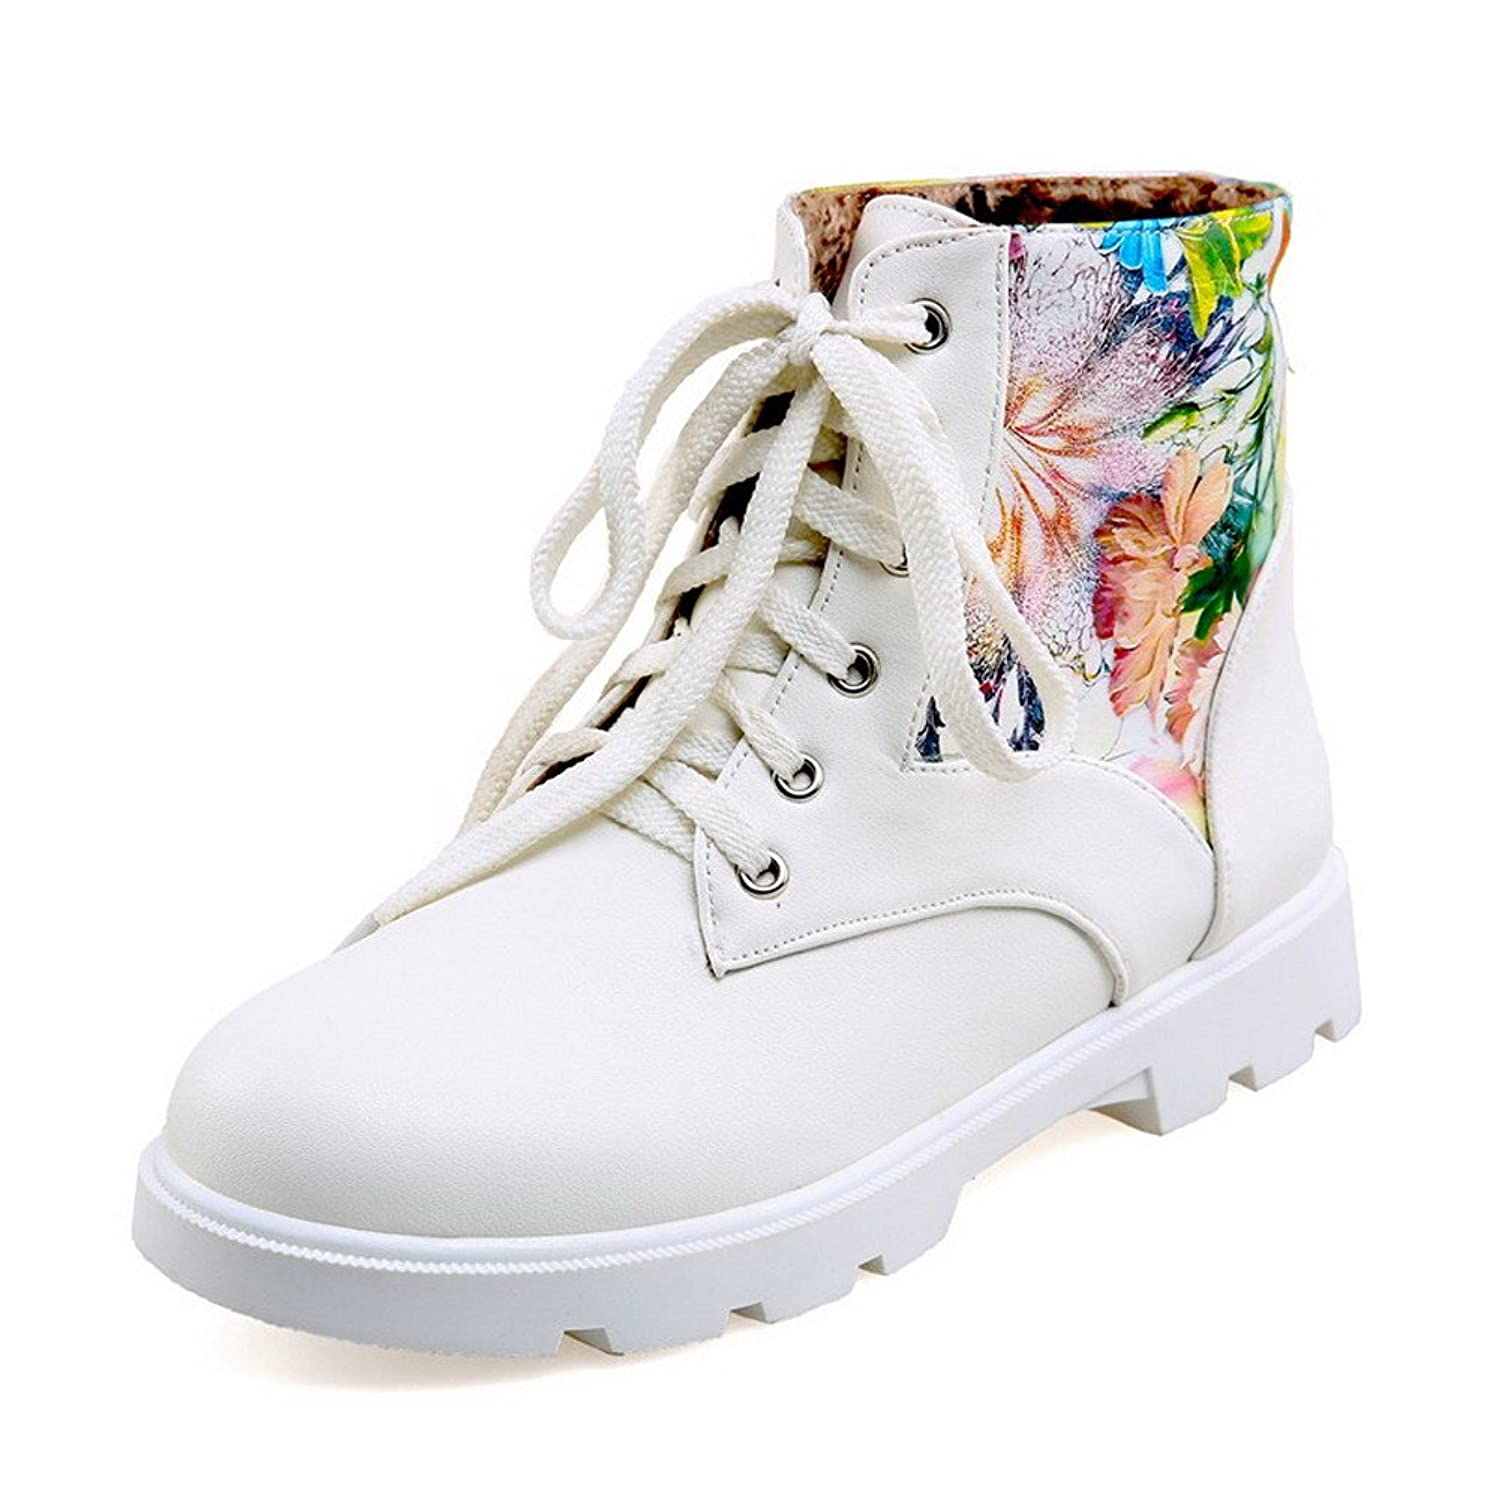 VogueZone009 Women's Soft Material Lace-up Round Closed Toe Low-Heels Low-top Boots